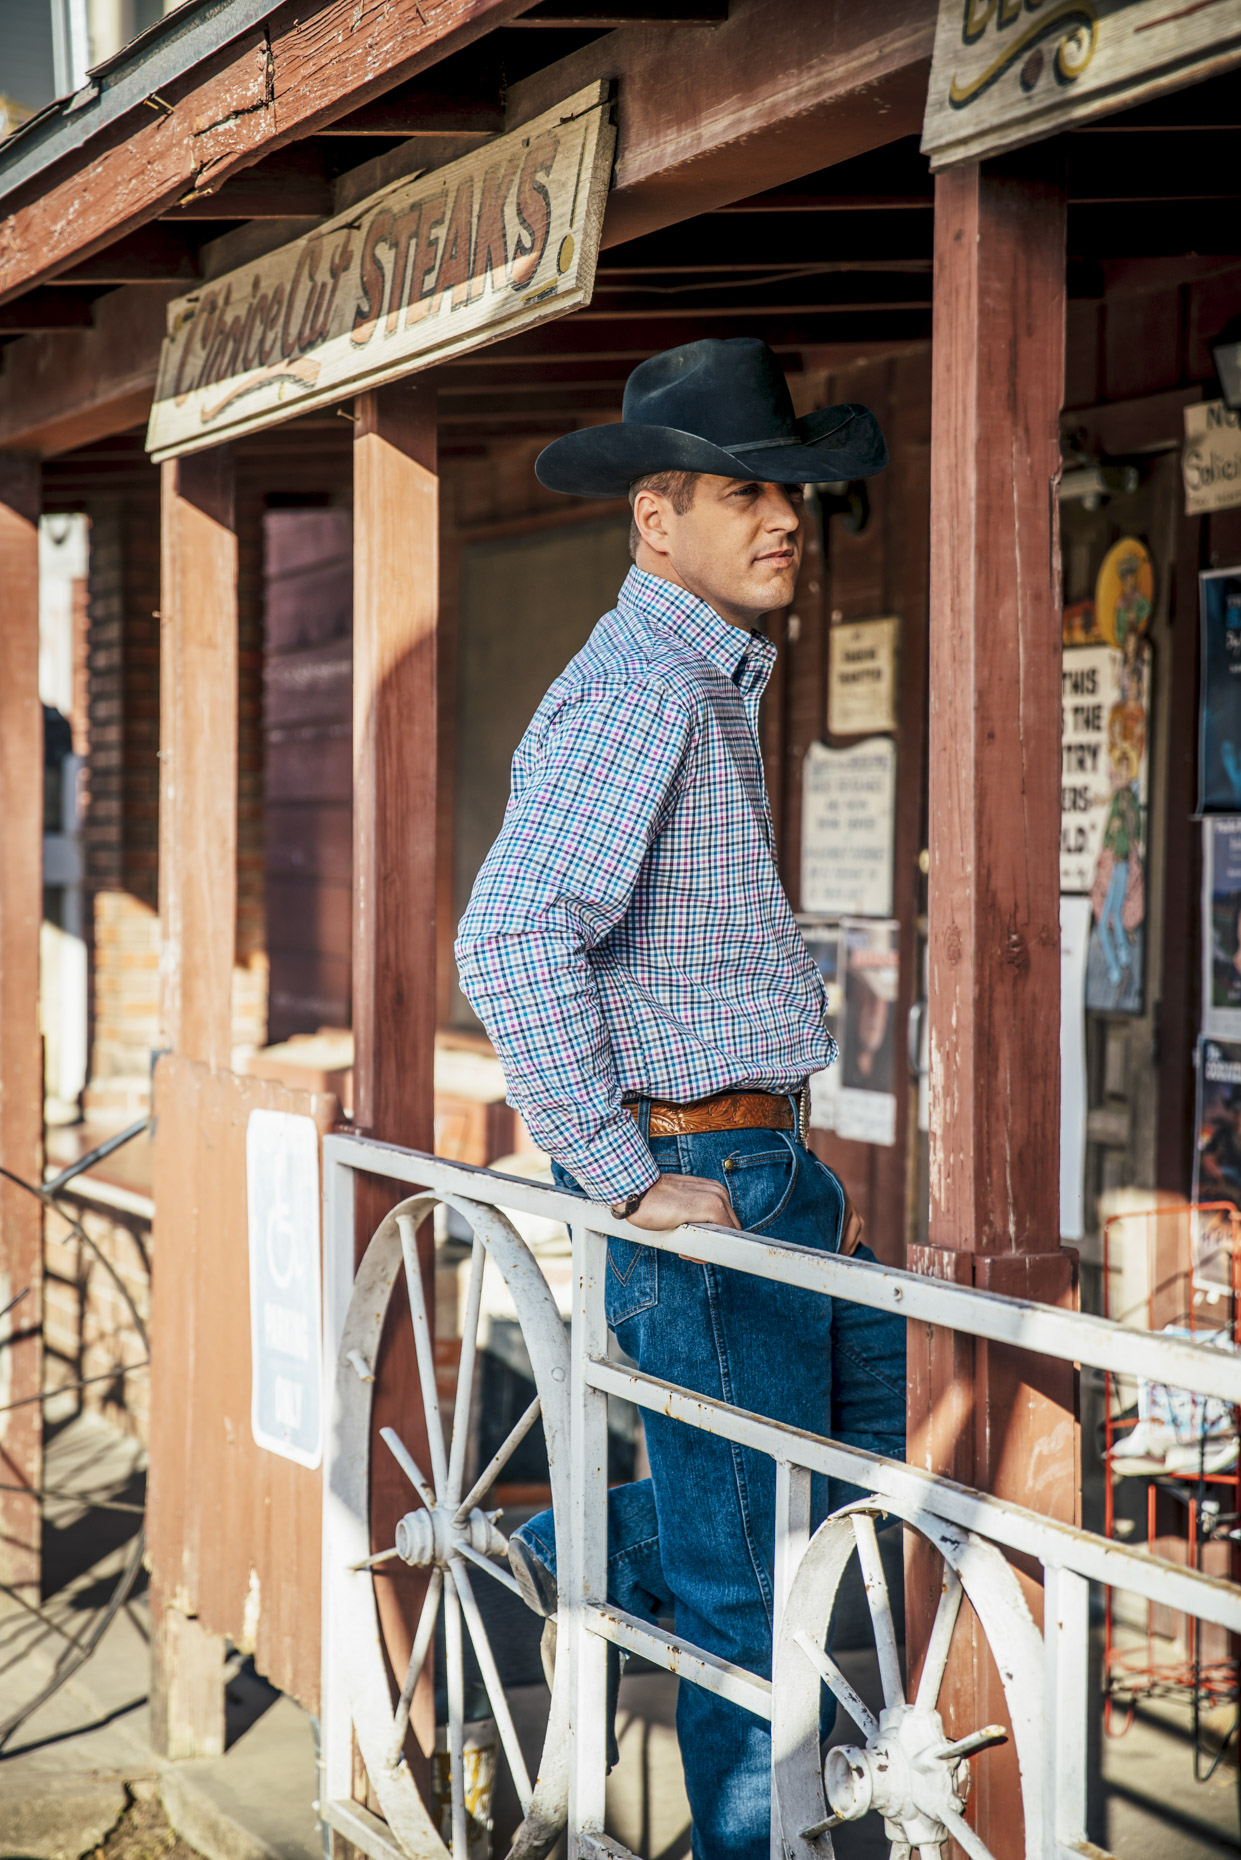 Cowboy in wrangler clothes and hat standing on porch of Broken Spoke bar